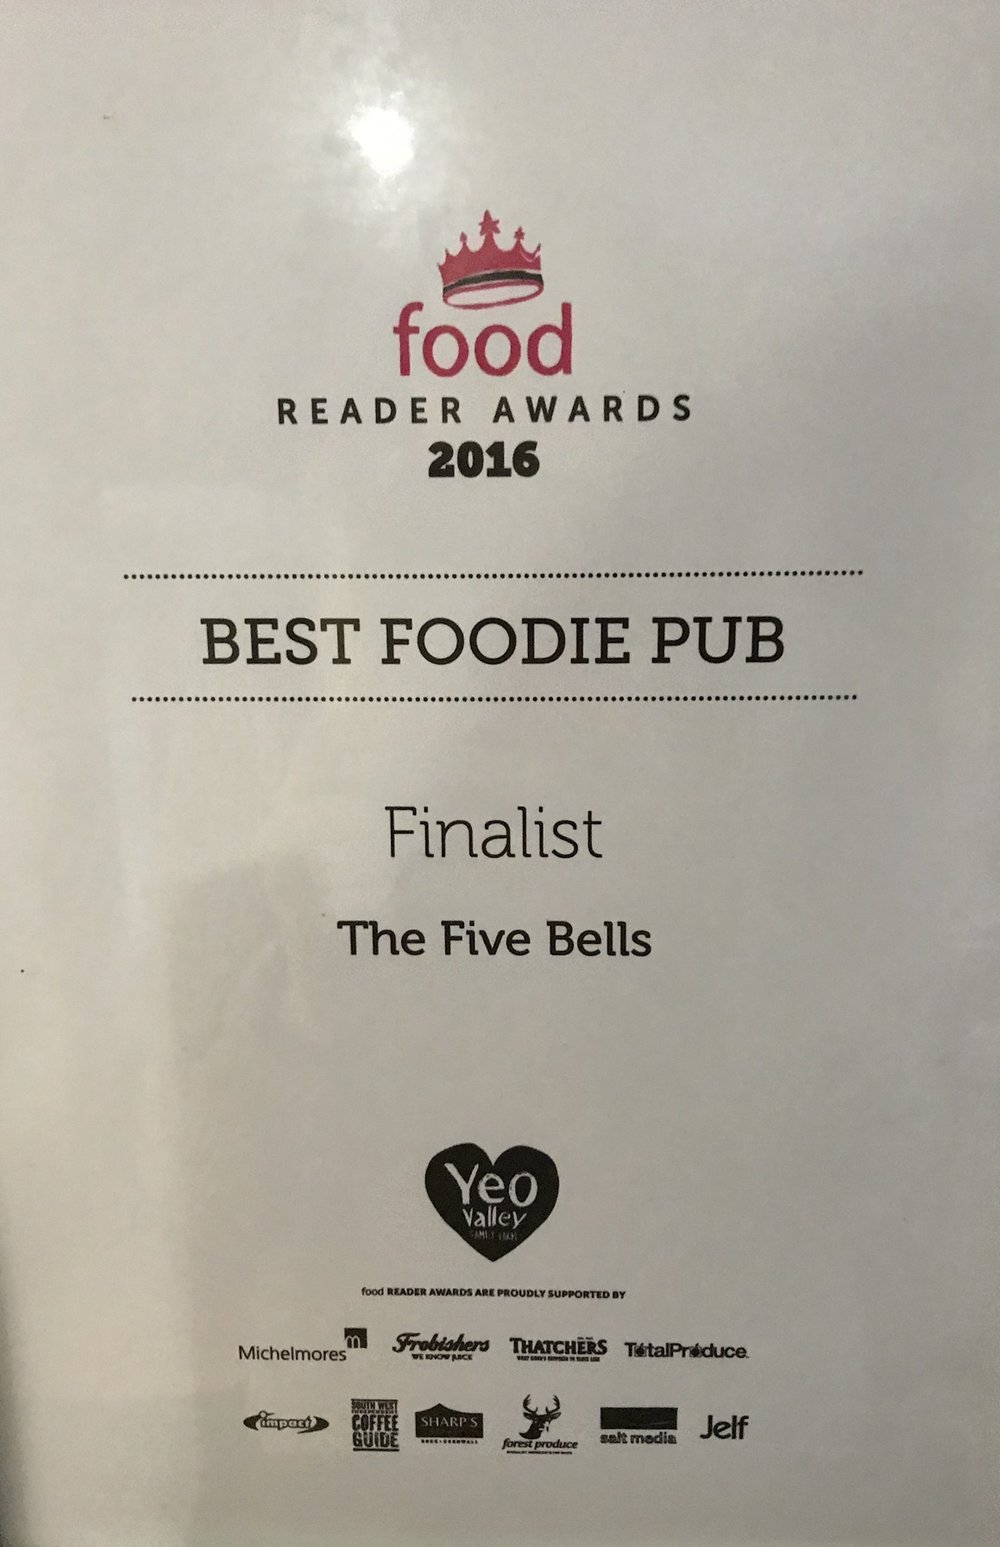 Foodie Awards 2016 Best Foodie Pub